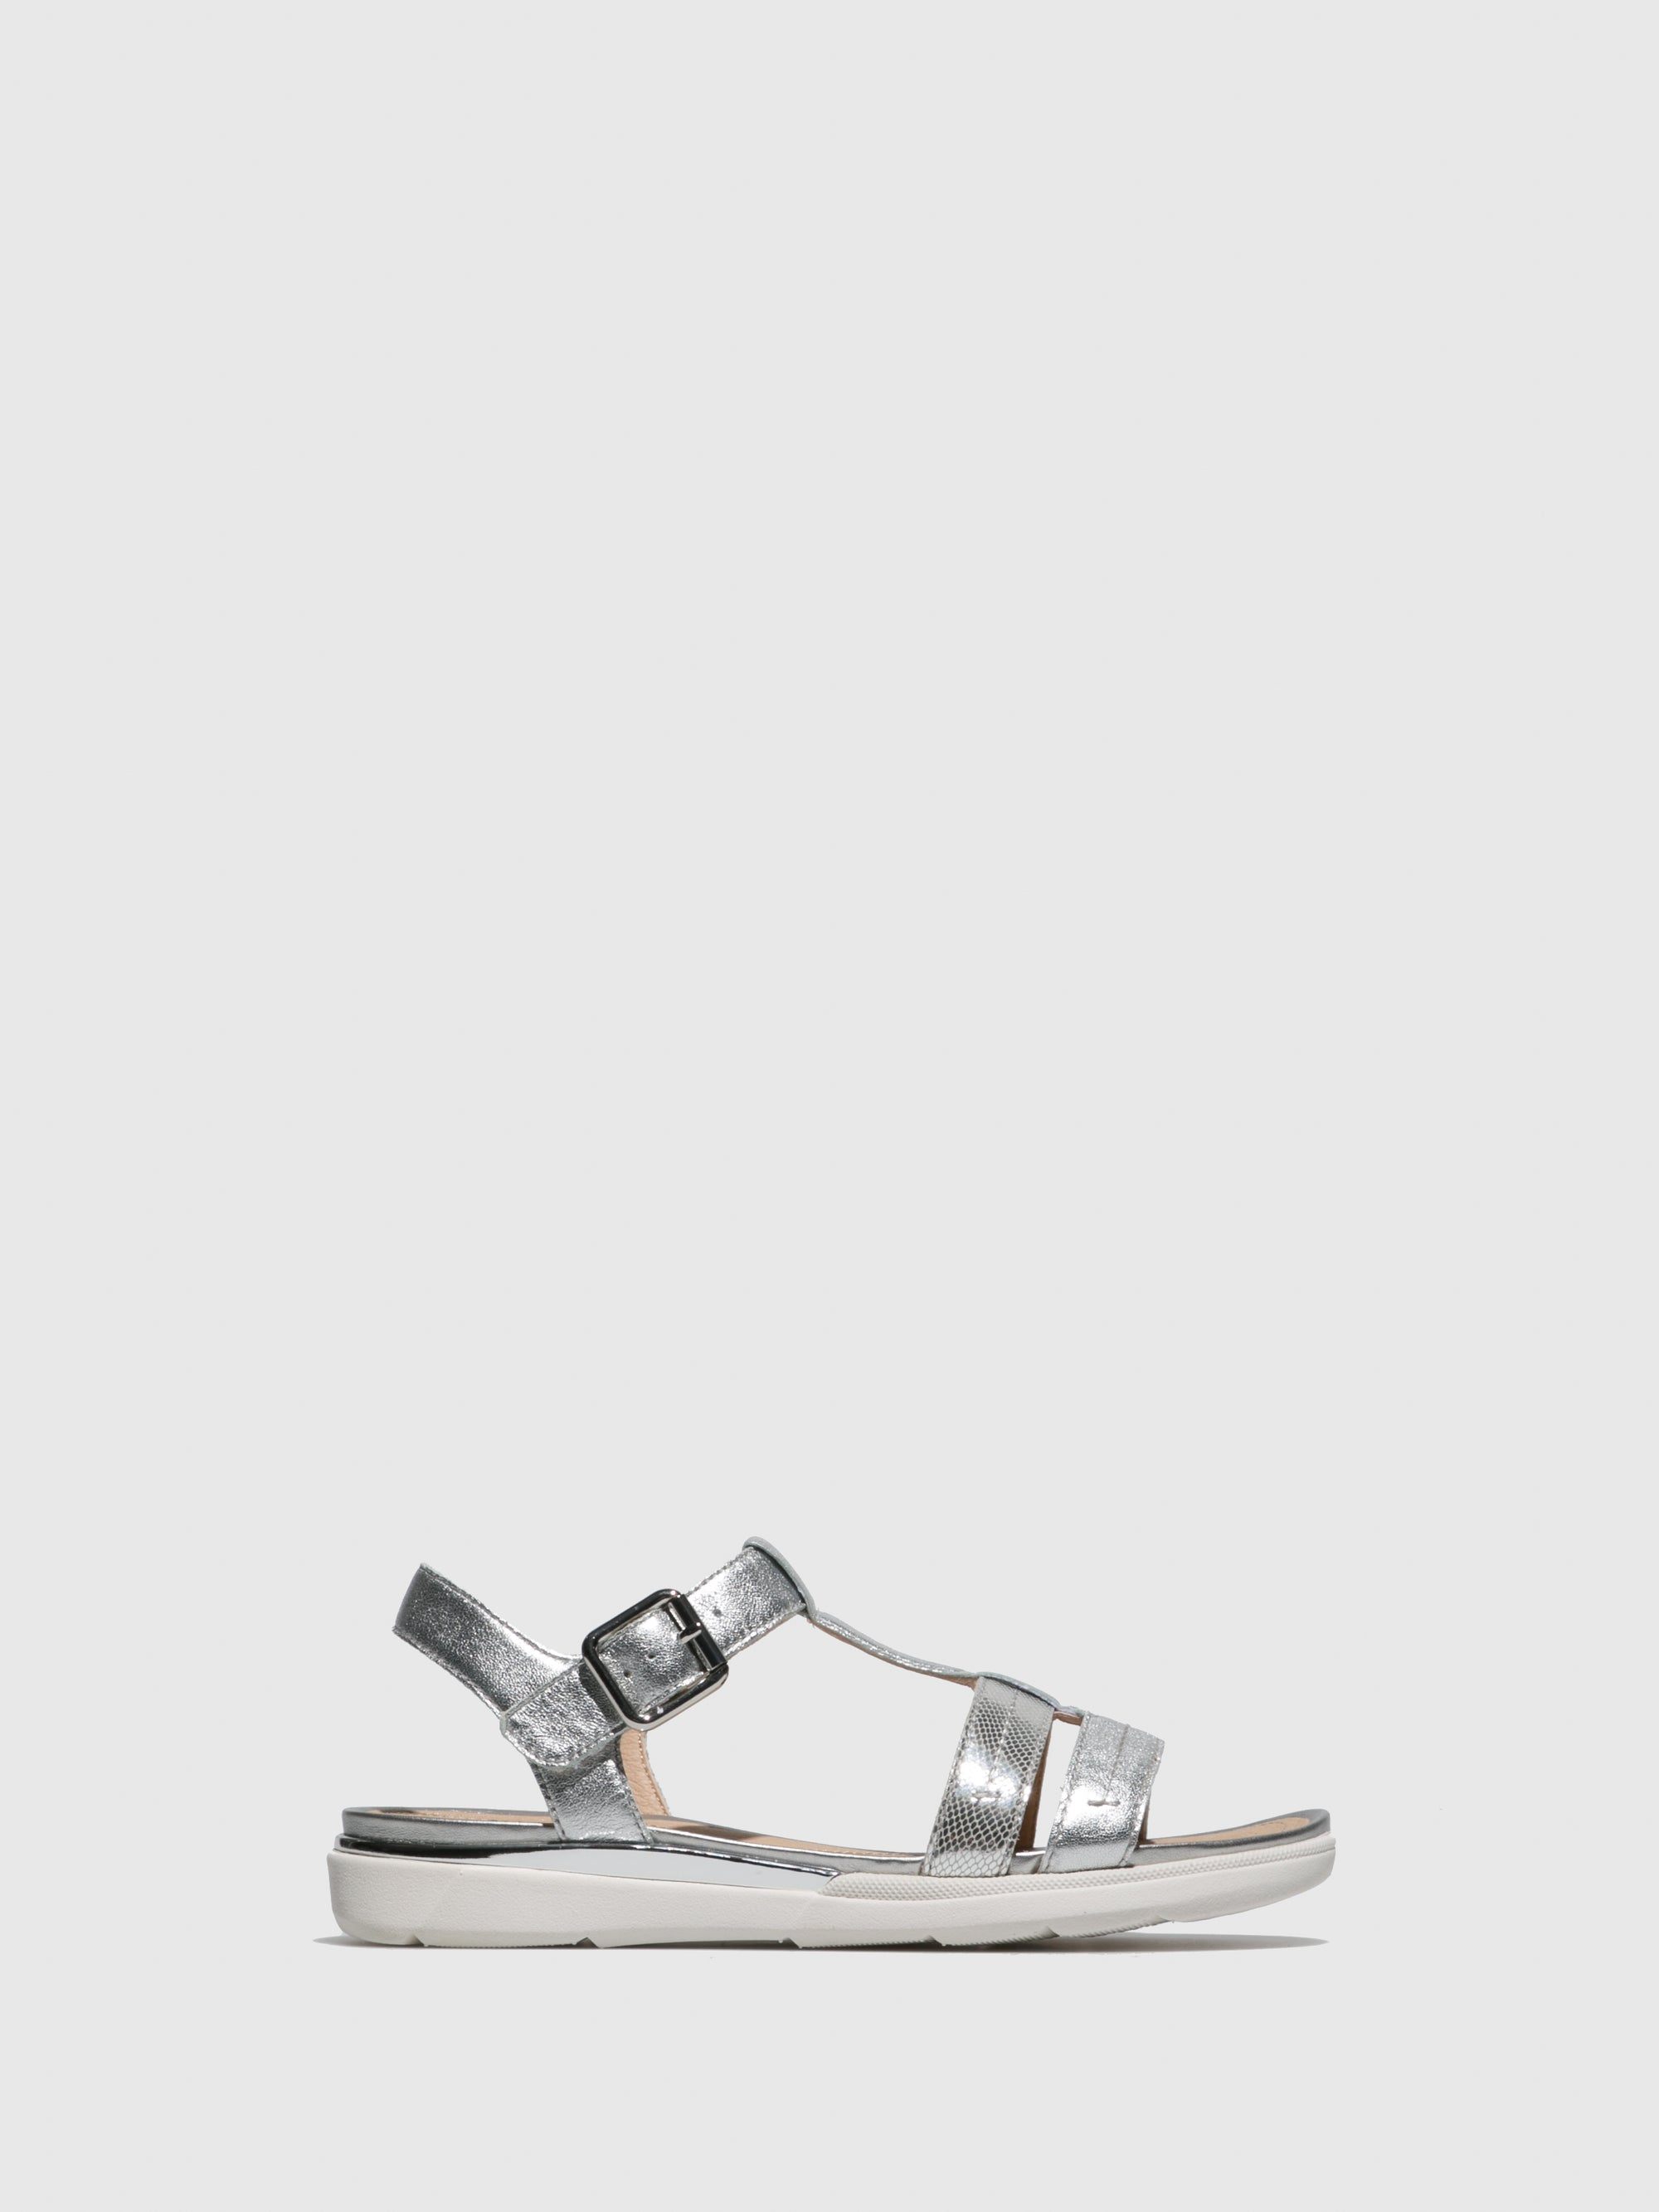 Geox Silver Ankle Strap Sandals